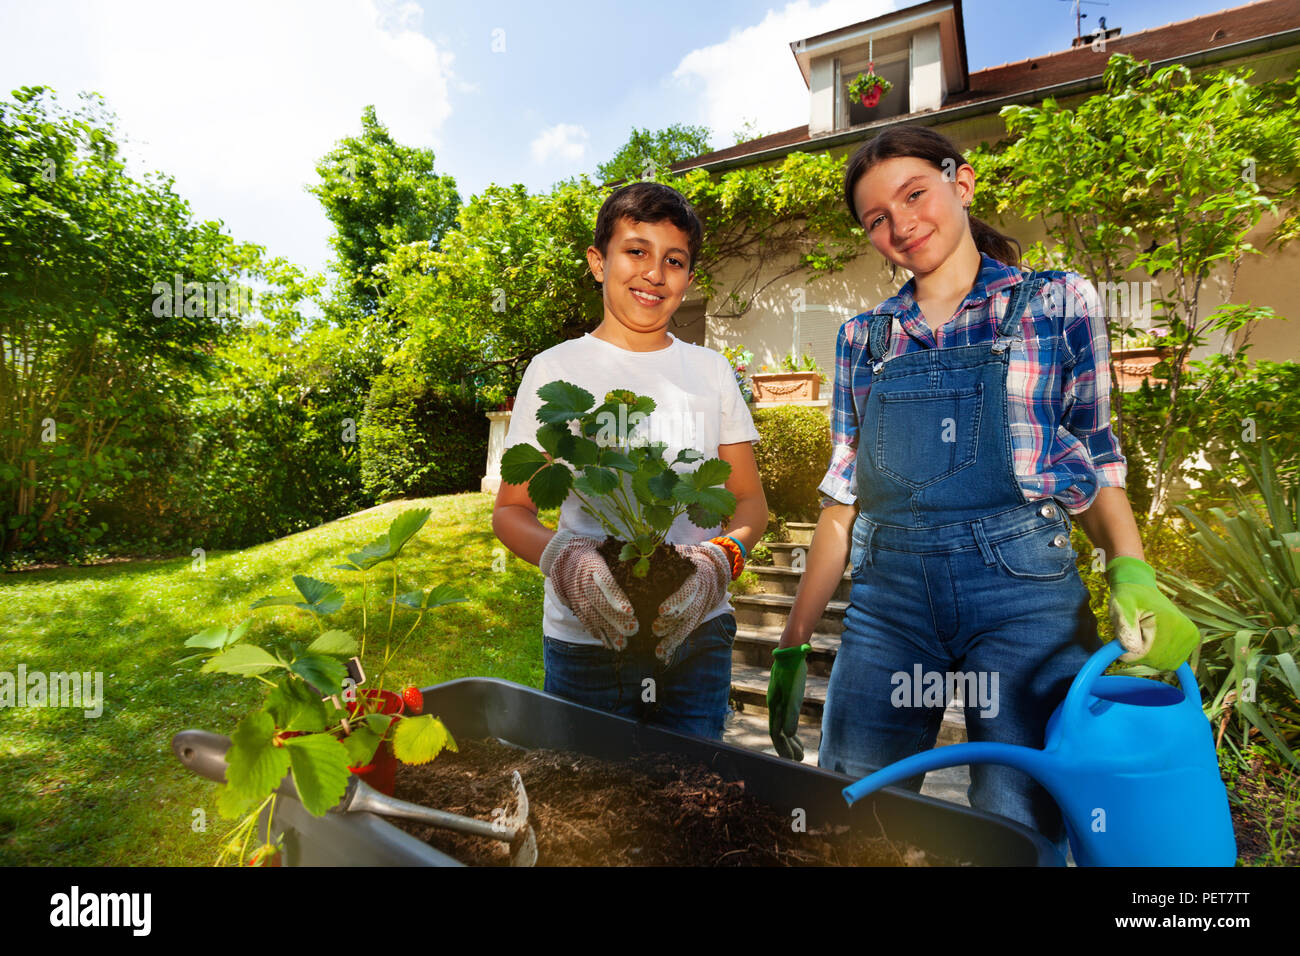 Portrait of preteen boy and girl planting strawberries in containers in the garden at sunny day - Stock Image